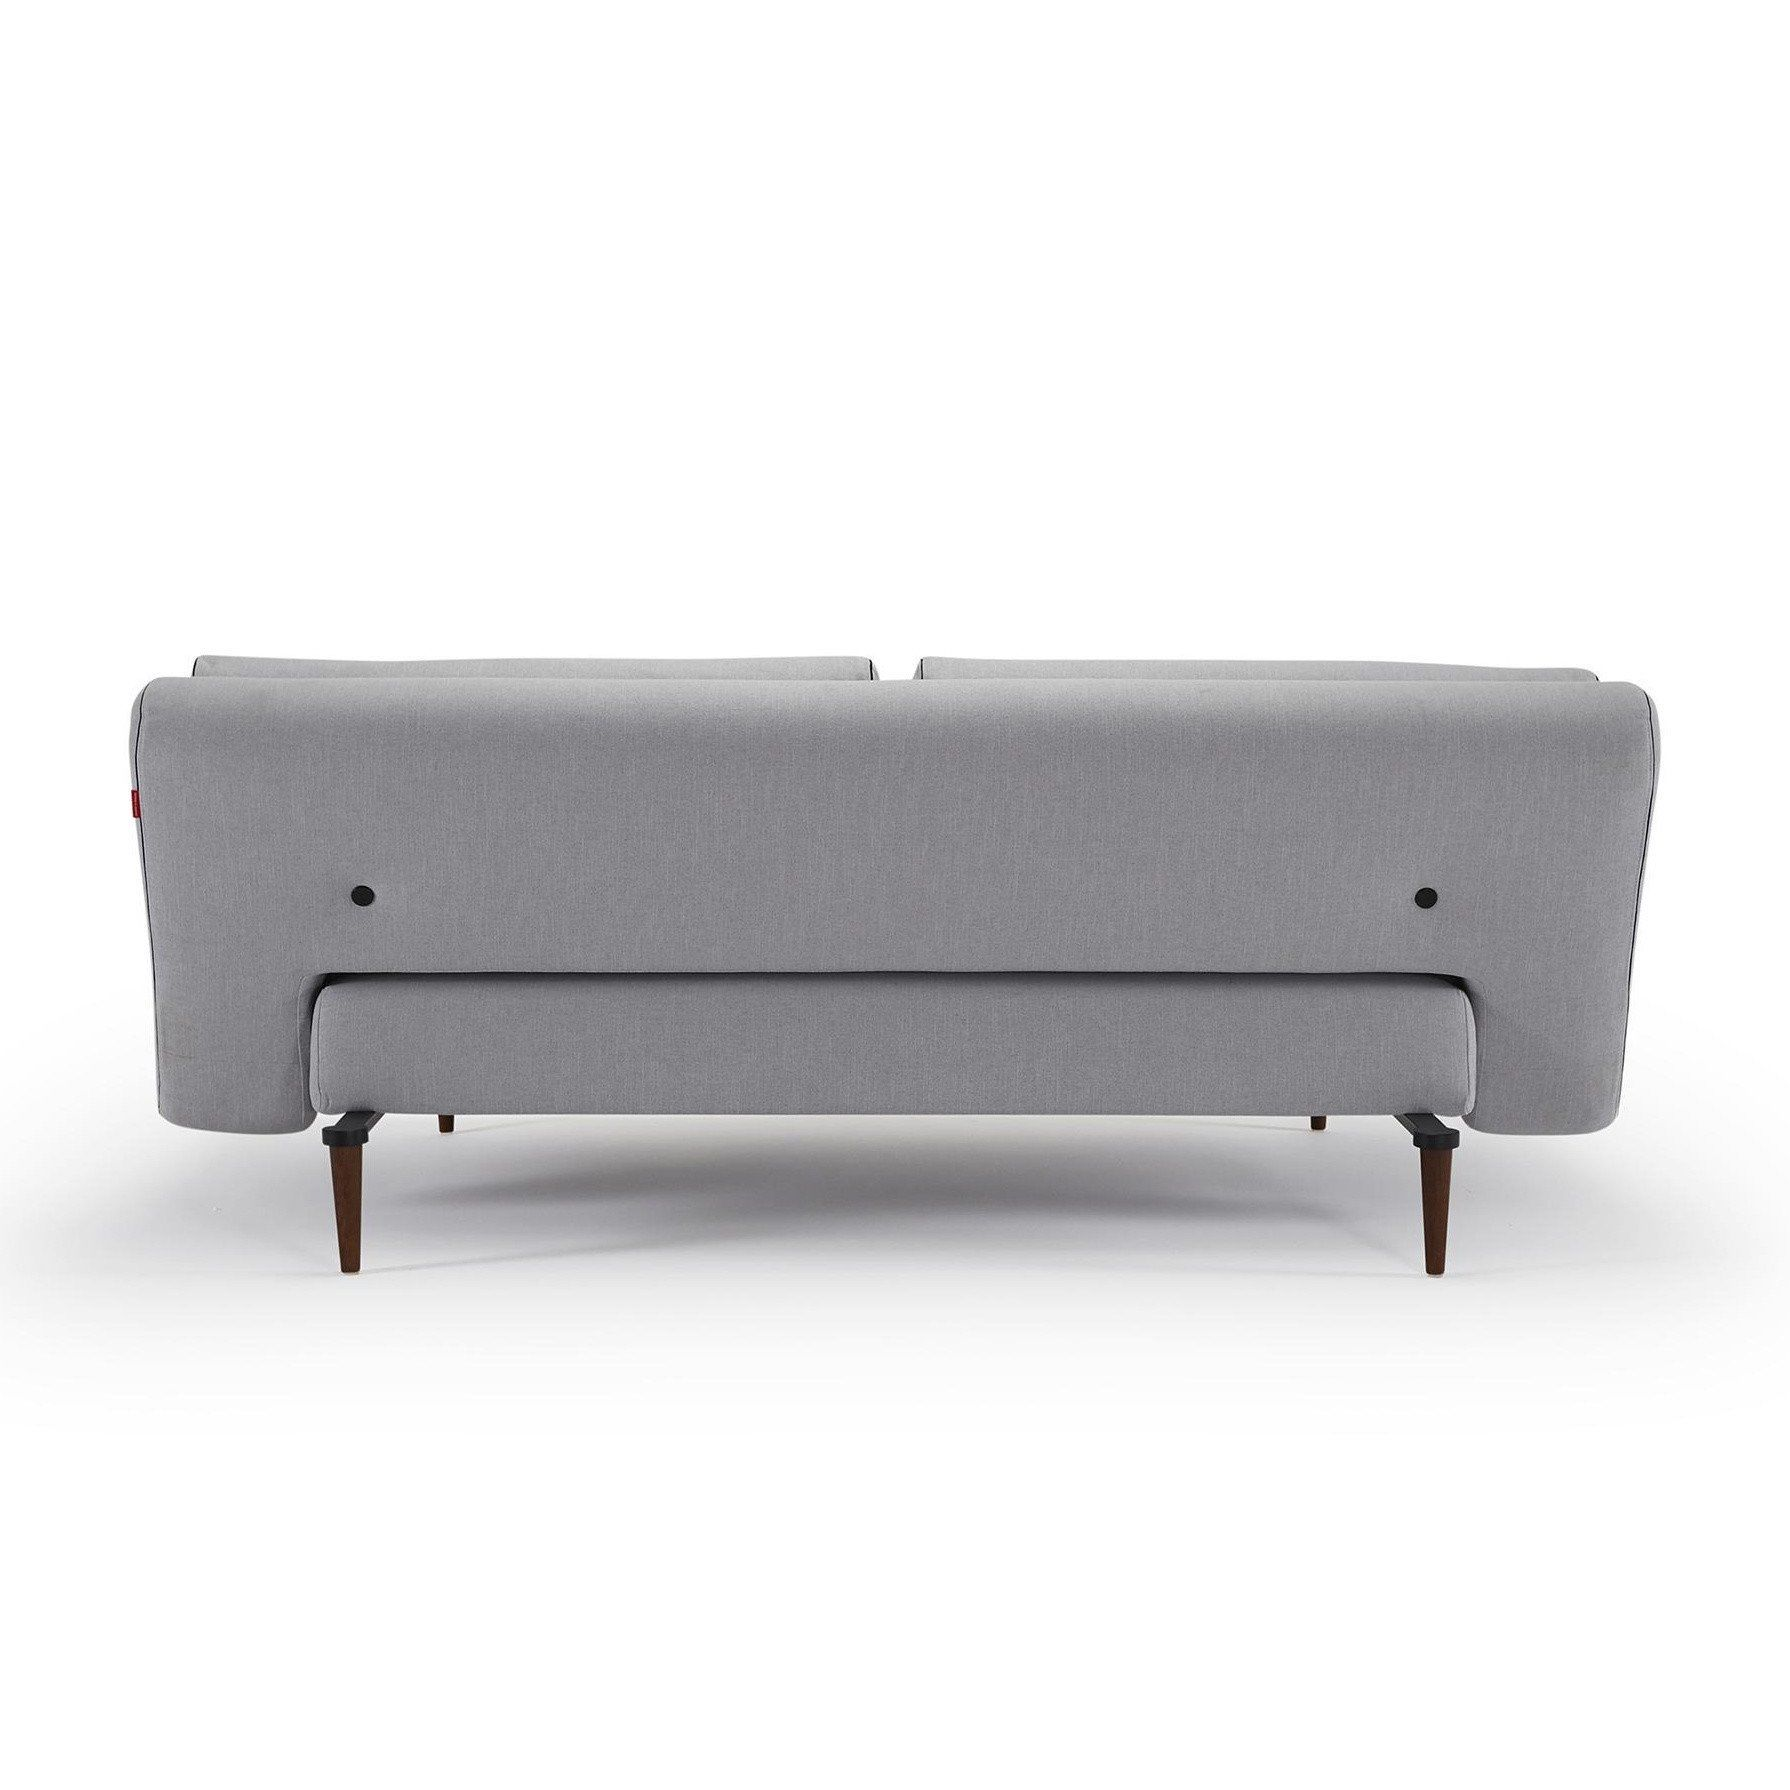 Innovation Unfurl Lounger Sofa Bed | AmbienteDirect